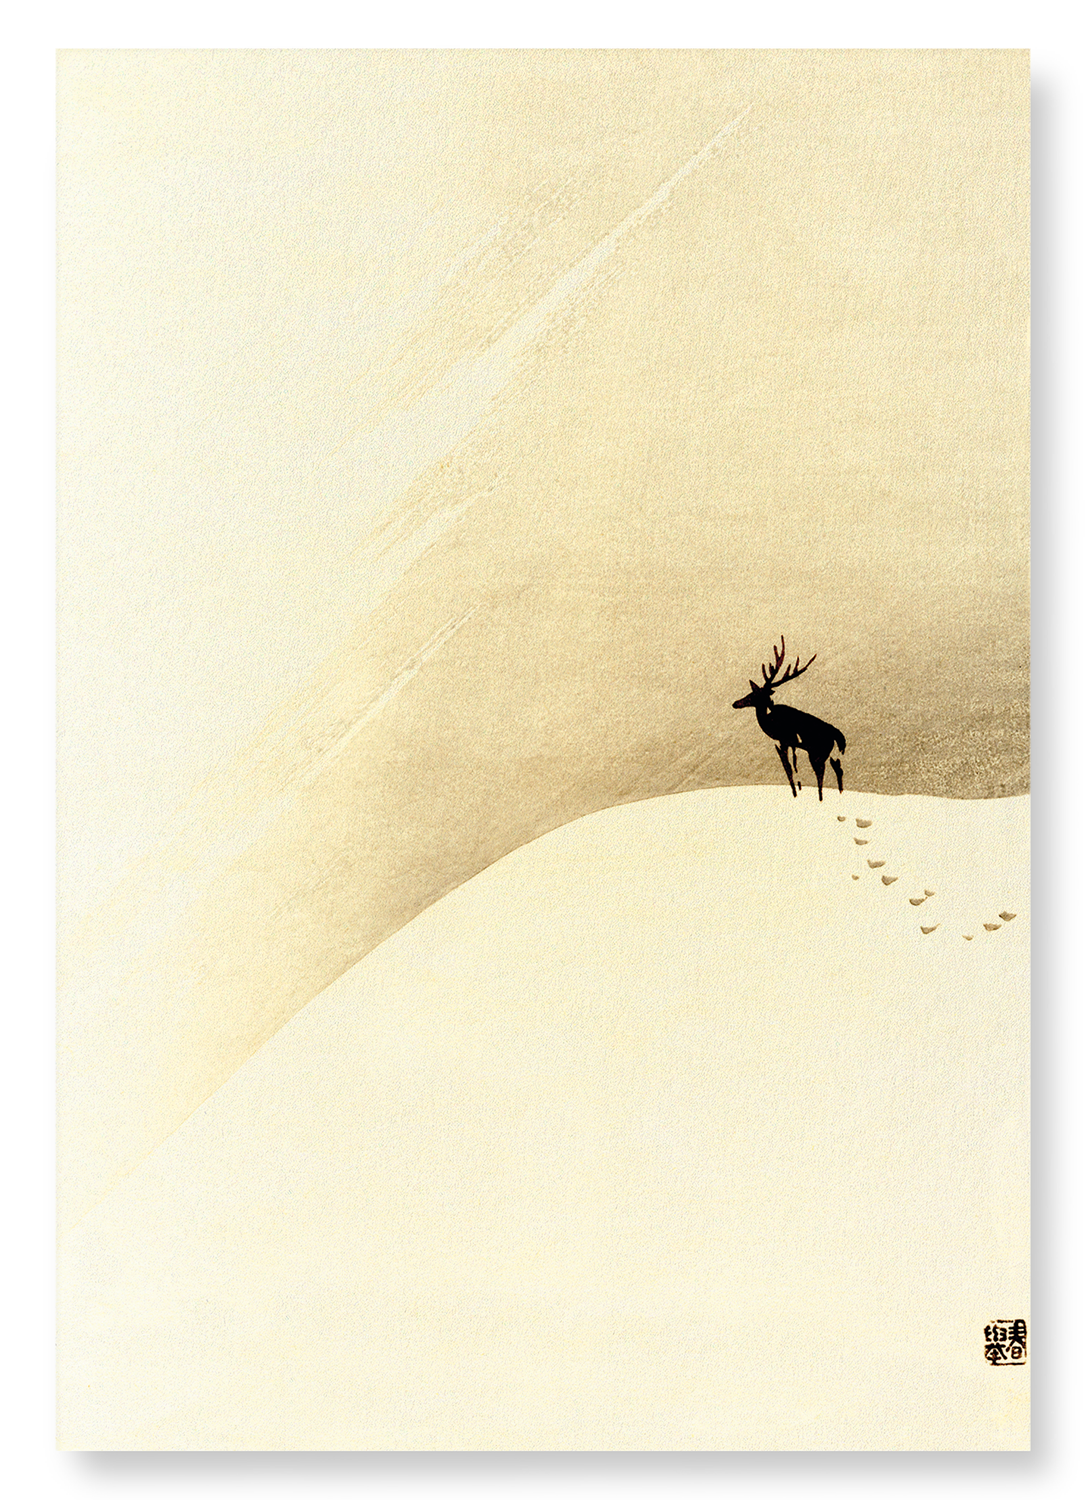 Deer on mountain: 2xPrints